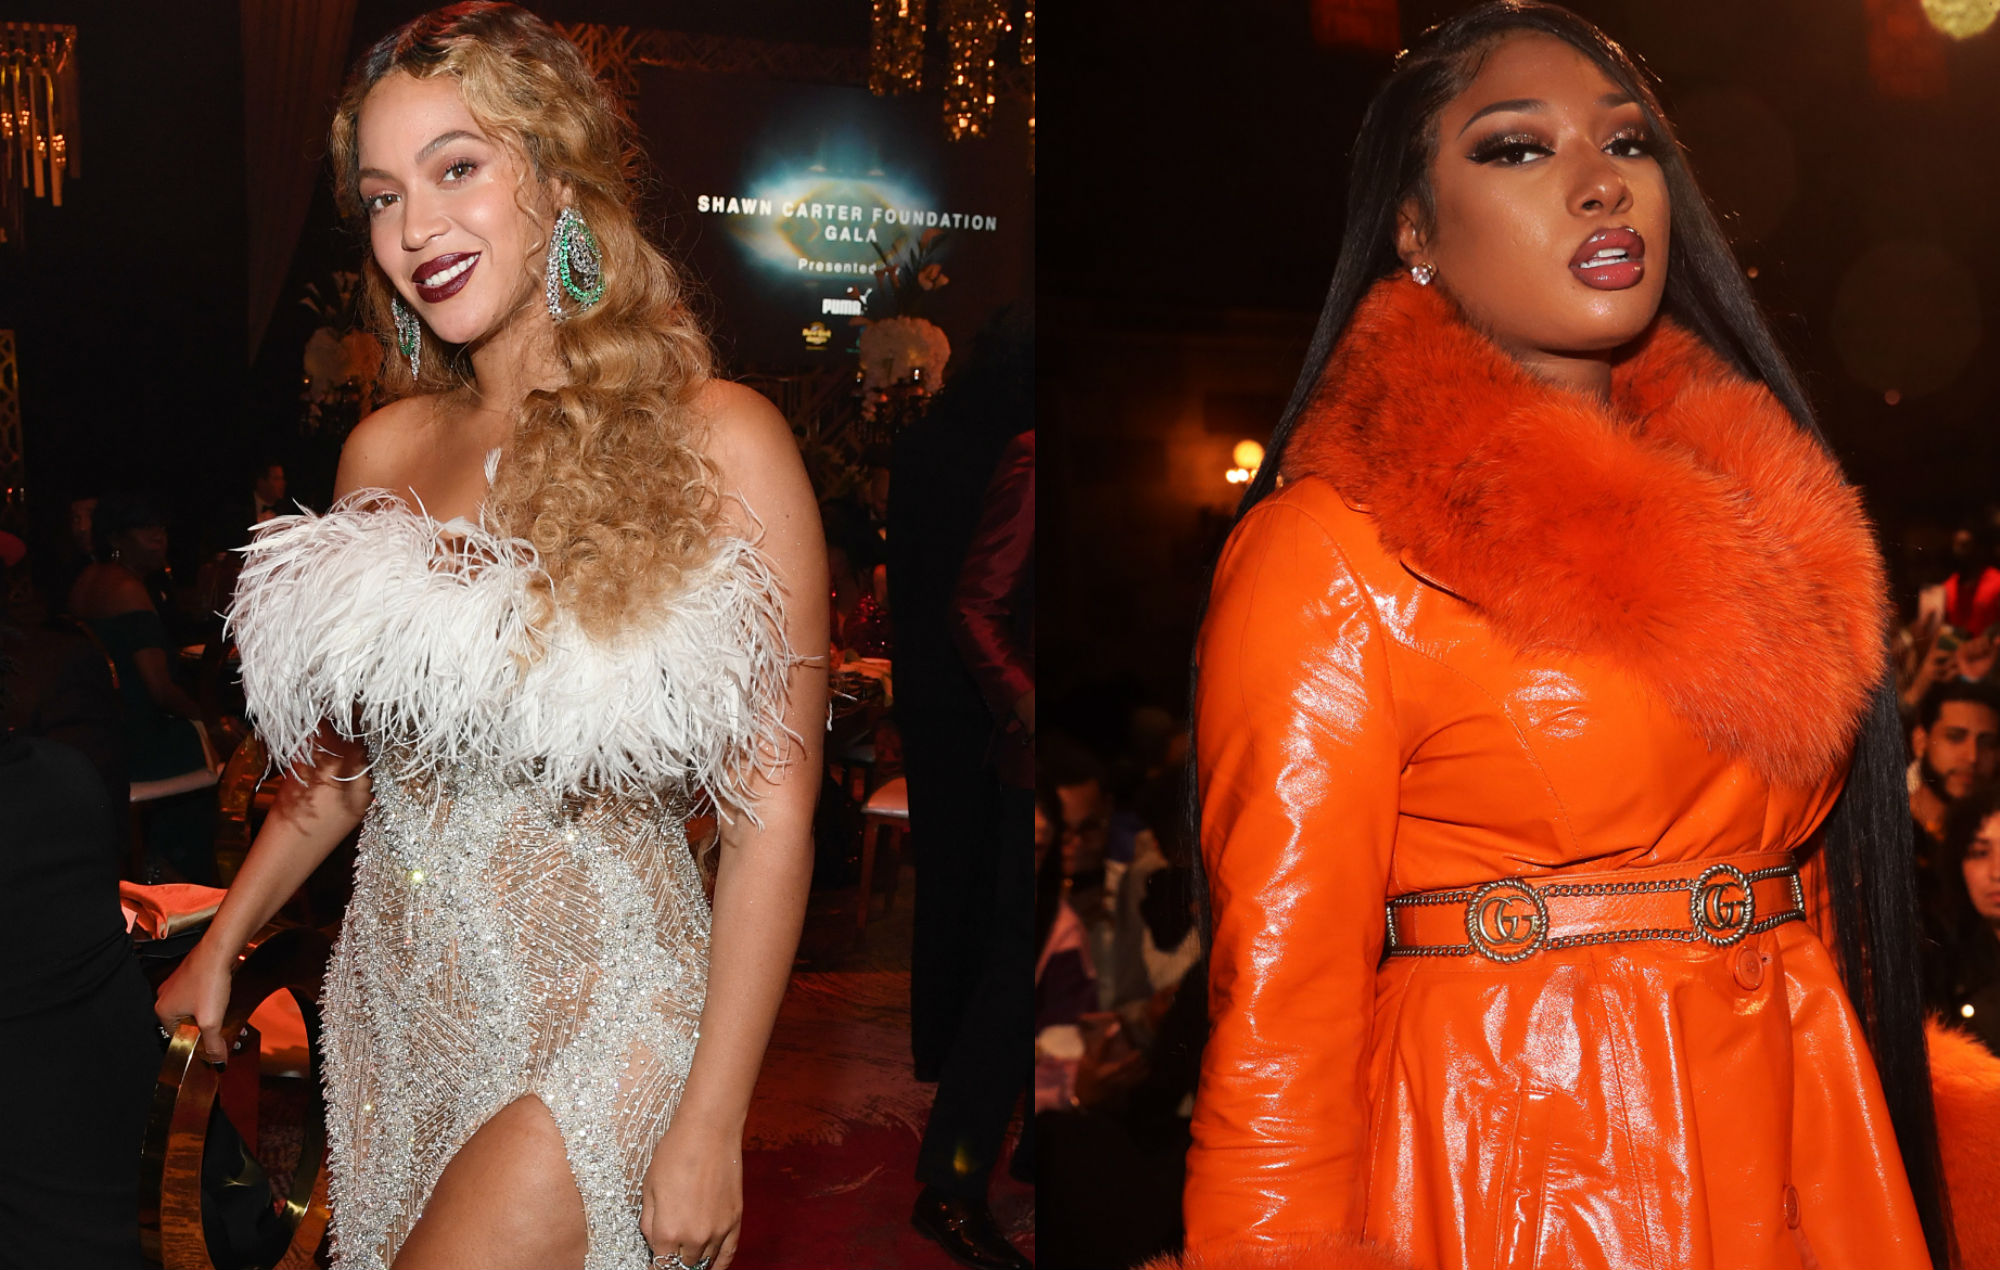 Lil Kim Congratulates Beyonce And Megan Thee Stallion For Their Latest Successes